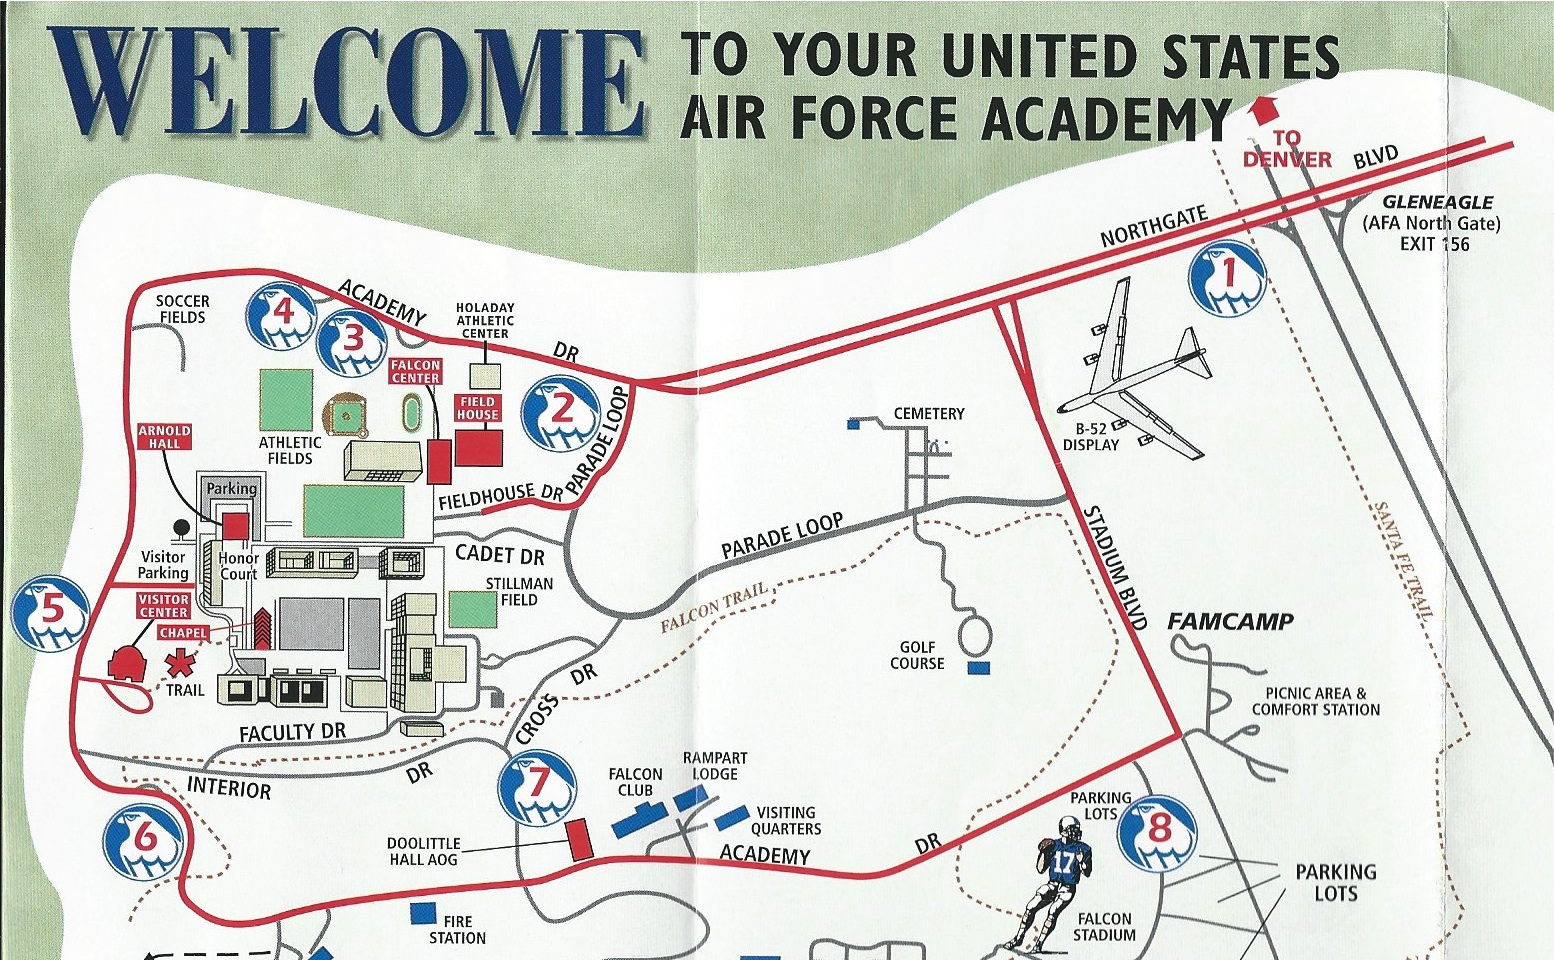 Air Force Academy Campus Map | dyslexiatips on american university campus, arkansas state university campus, united states army war college campus, maine maritime academy campus, northwestern university campus, texas tech university campus, howard university campus, rice university campus, northern illinois university campus, princeton university campus, university of chicago campus, ohio university campus, university of texas at austin campus, davidson college campus, university of rochester campus, west point academy campus,